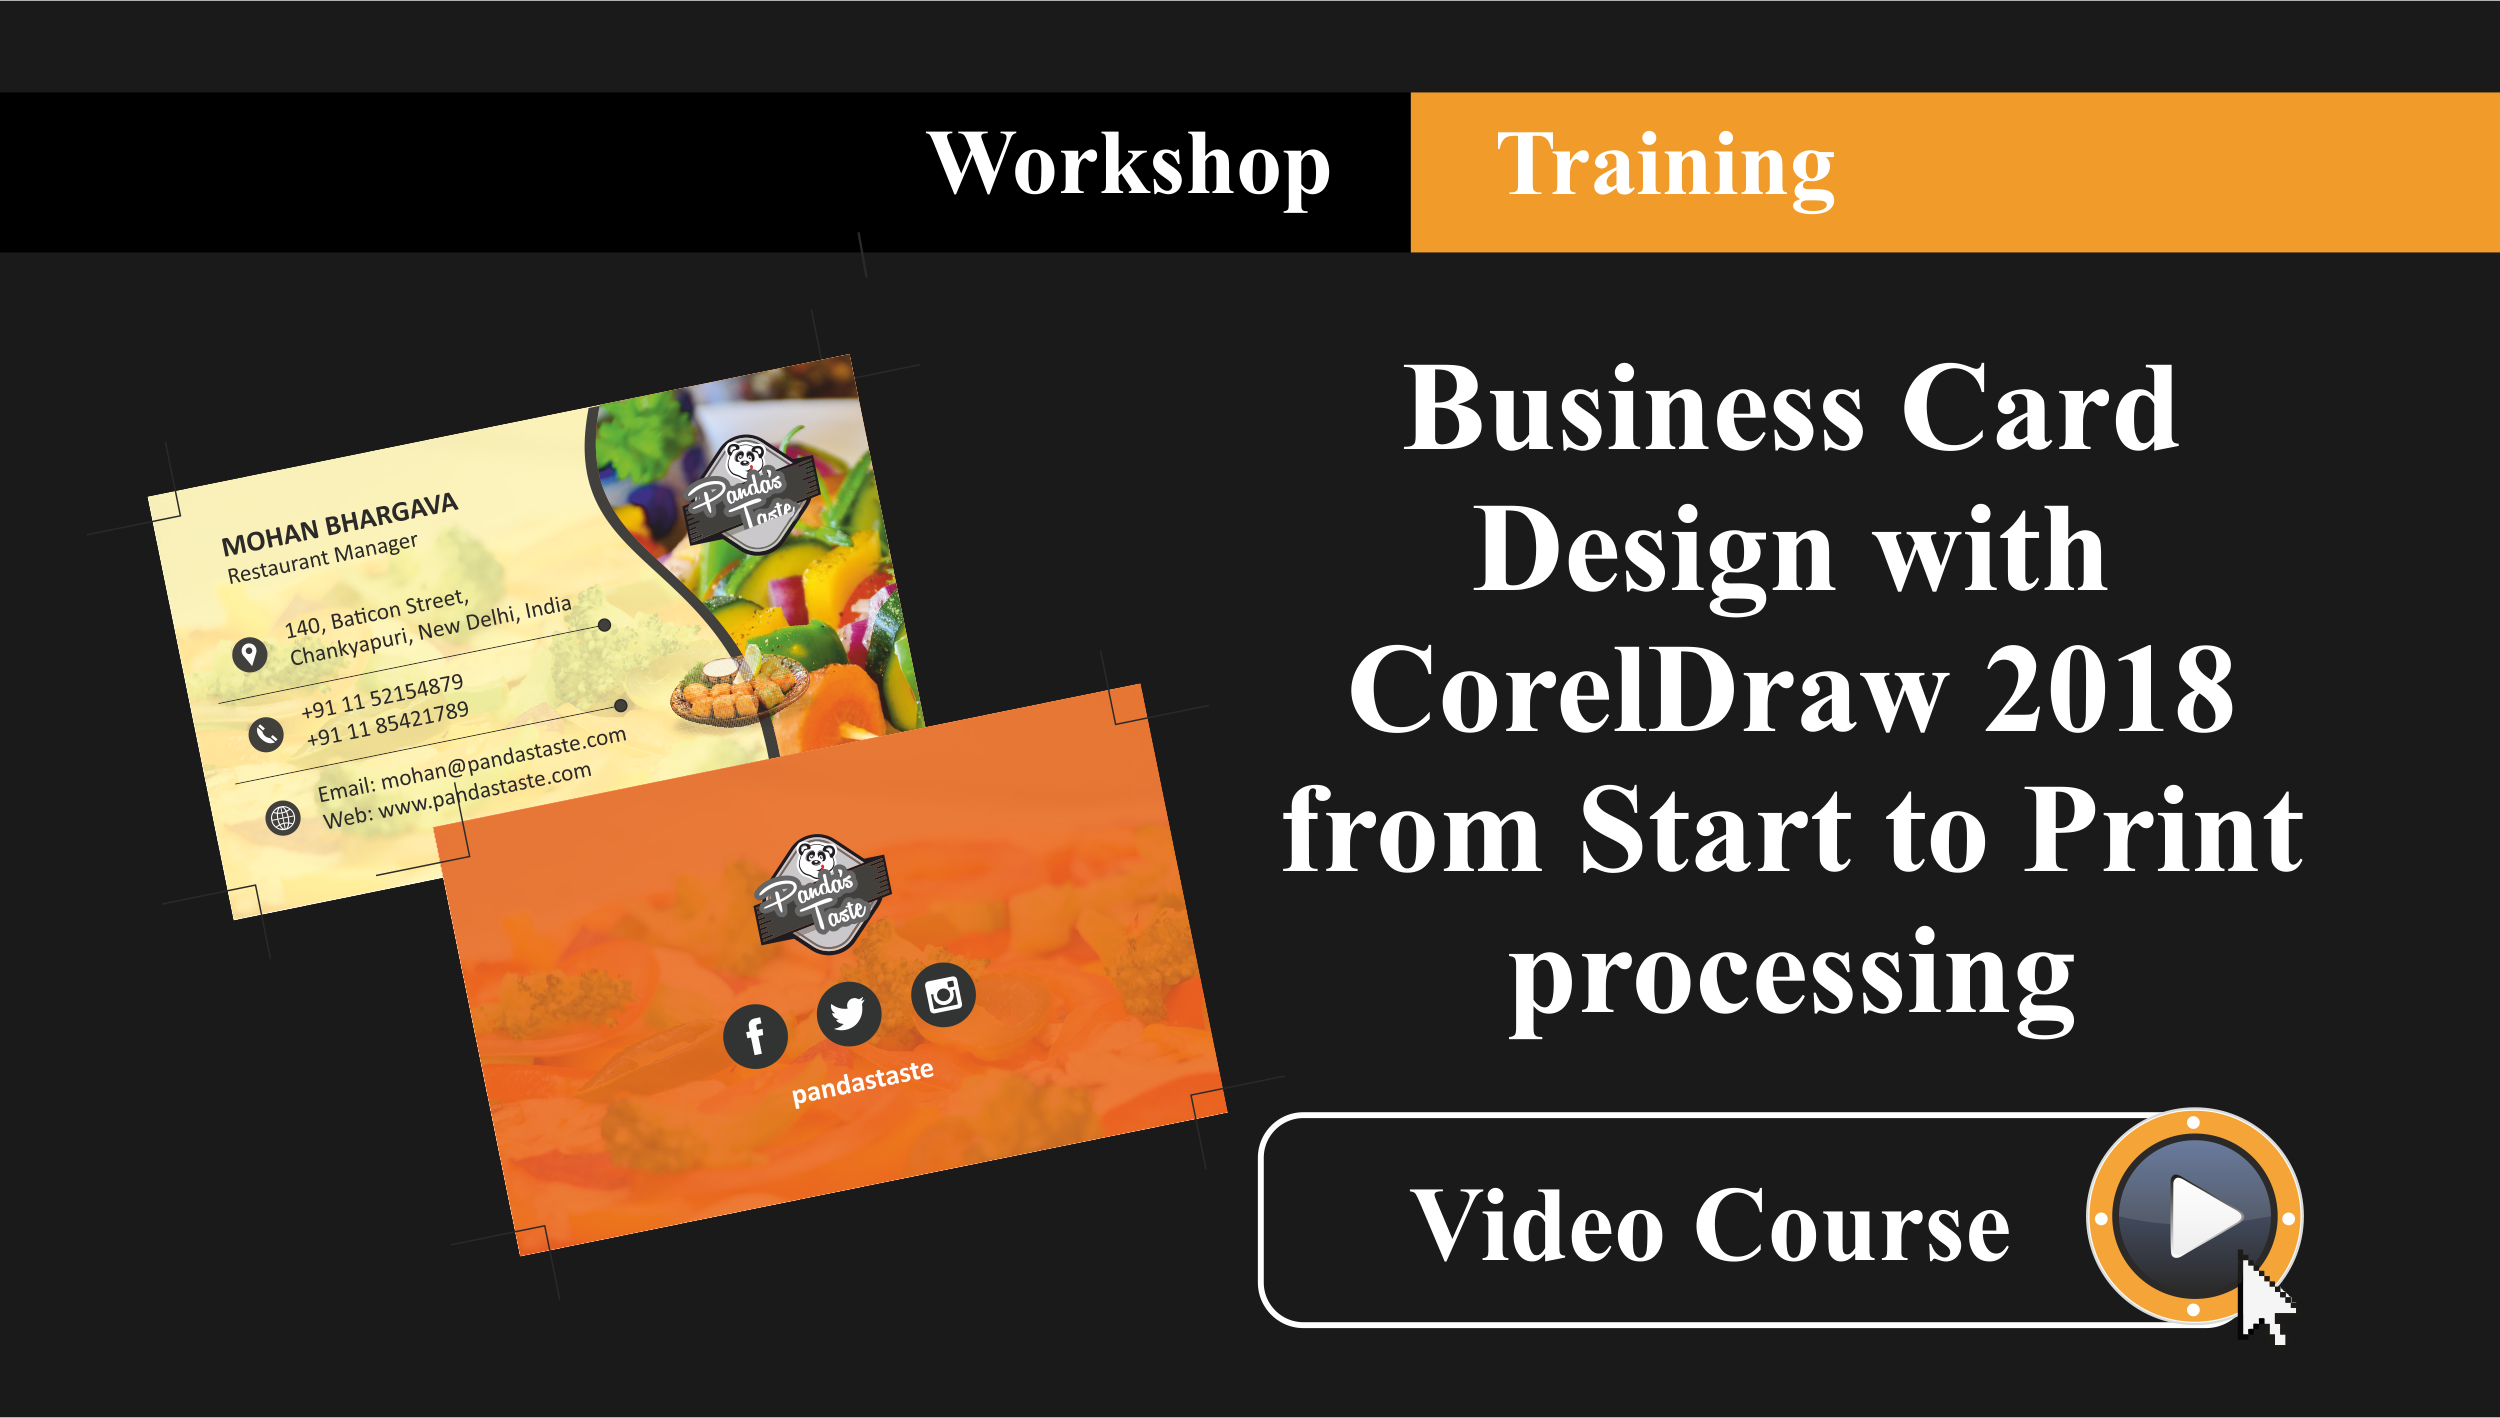 Workshop Training - Professional Business Card Design with